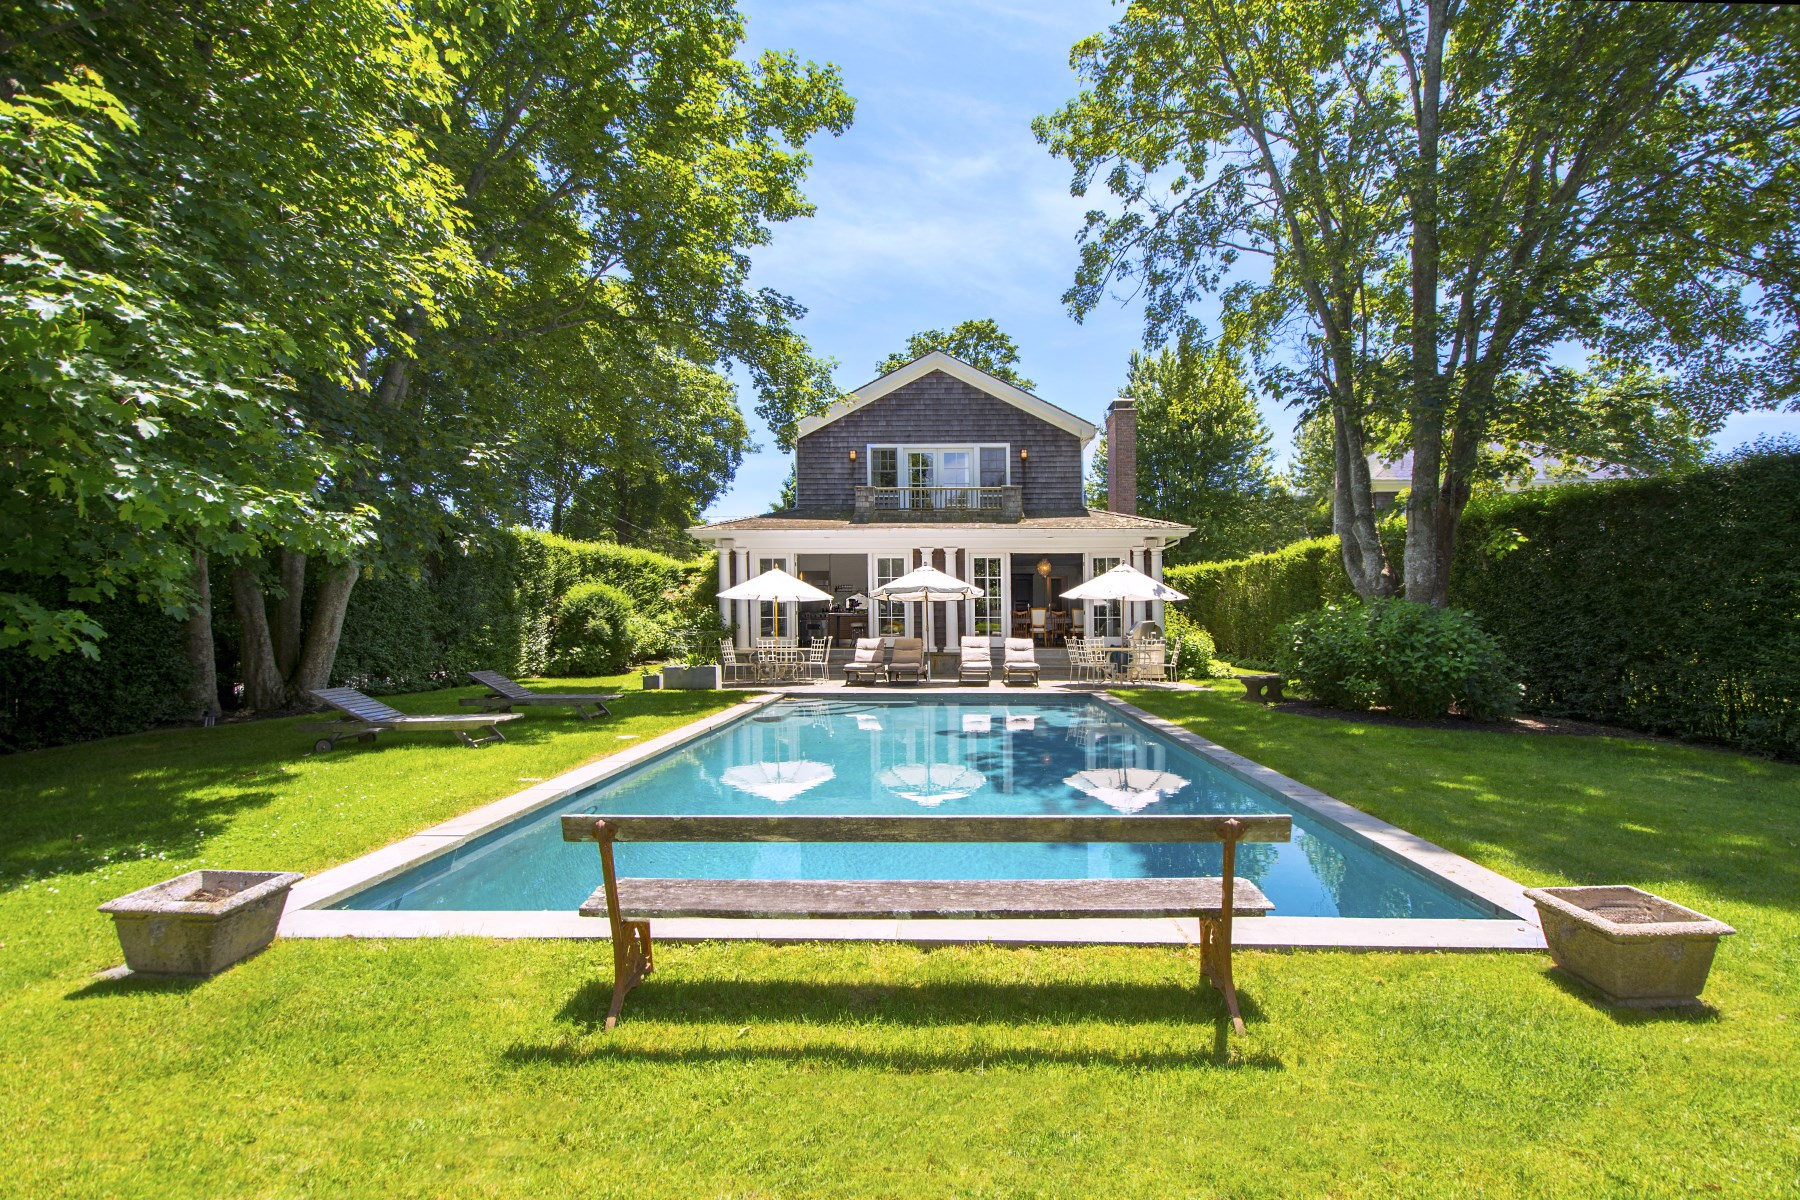 Villa per Vendita alle ore Traditional Village Home with Pool 97 Pelletreau Street Southampton, New York, 11968 Stati Uniti